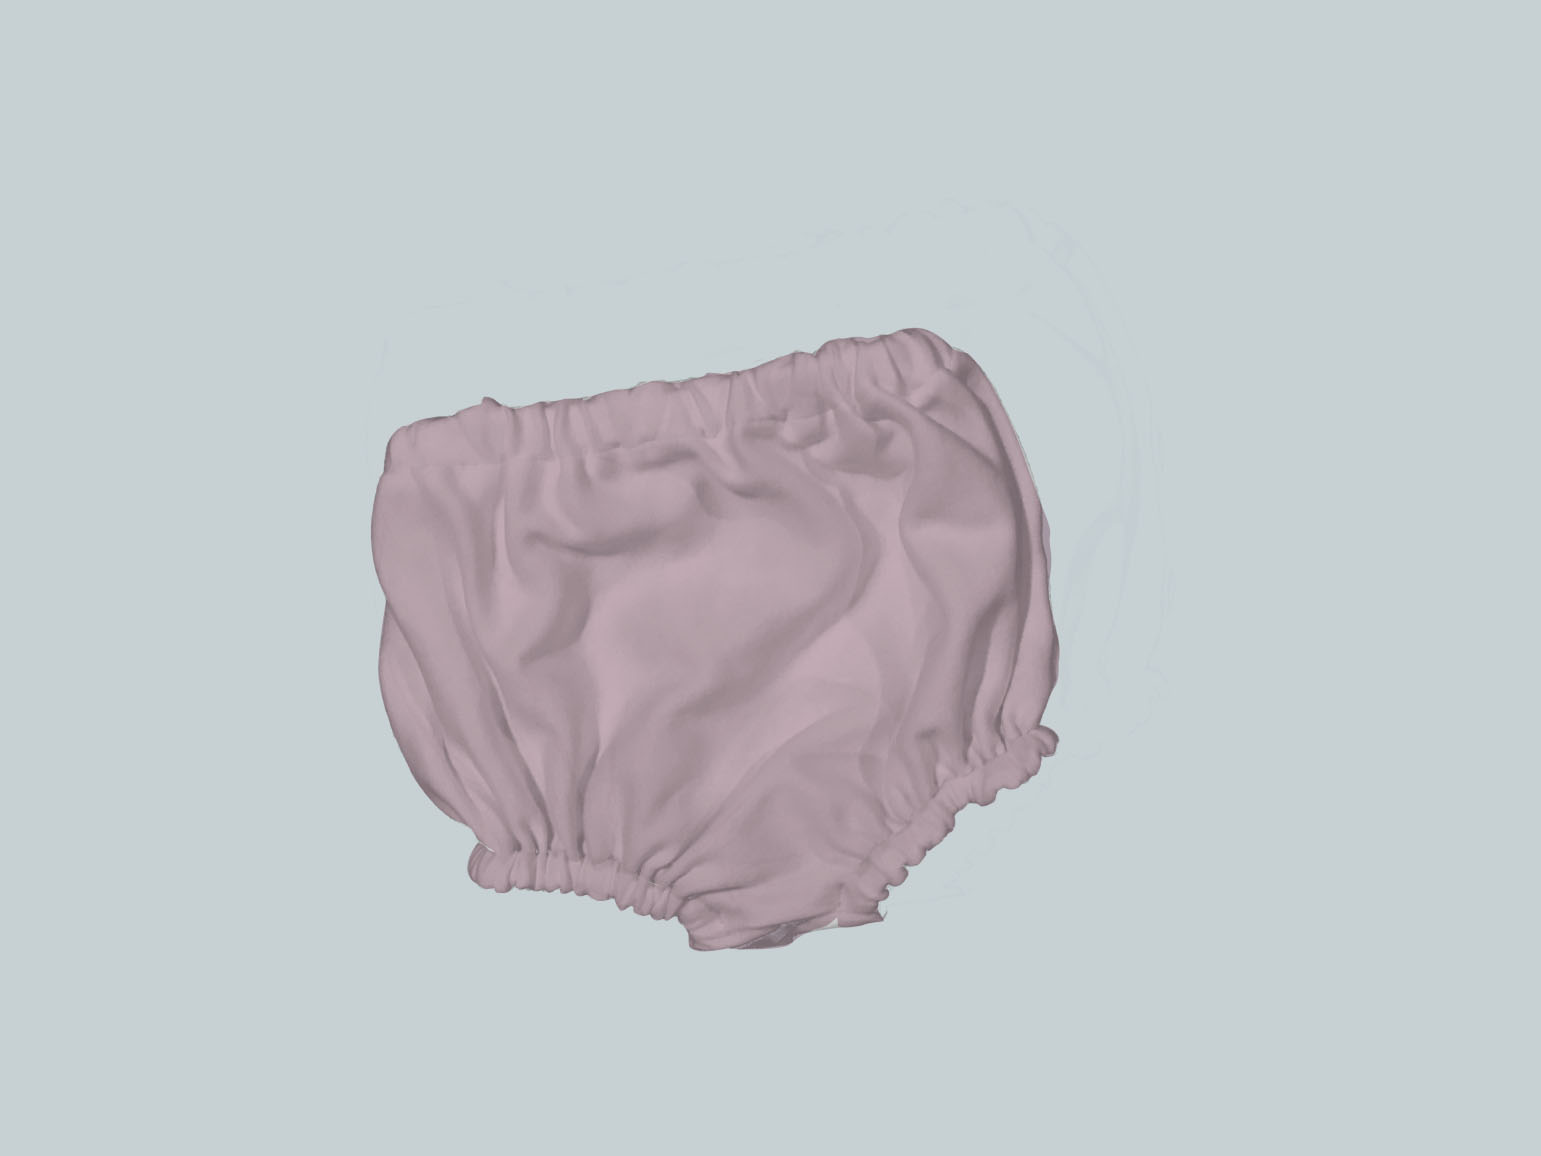 Bummies/Diaper Cover - Bright Pink